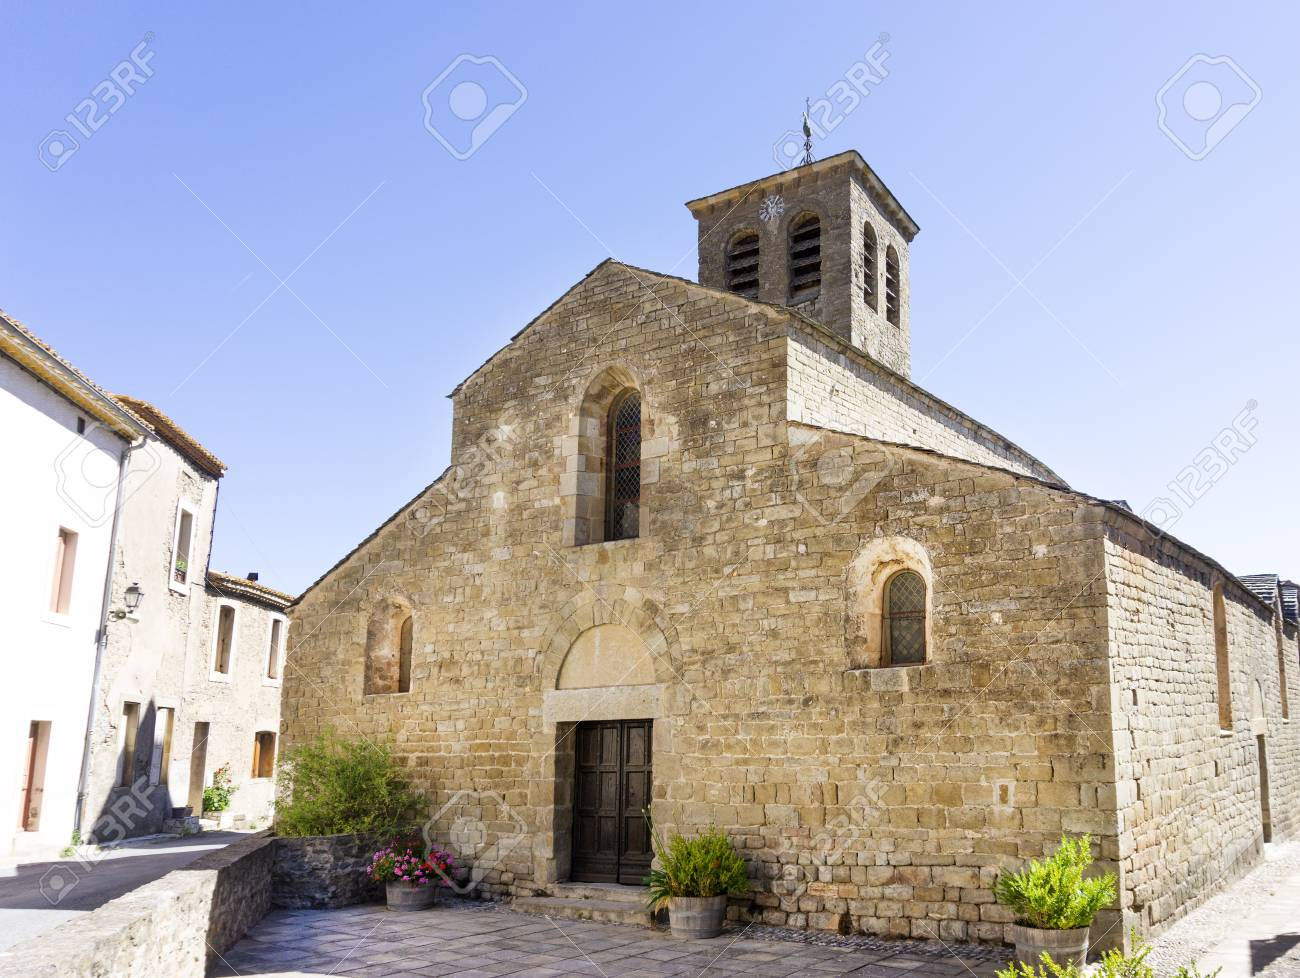 Church Of Escales Romanesque Architecture In Aude France